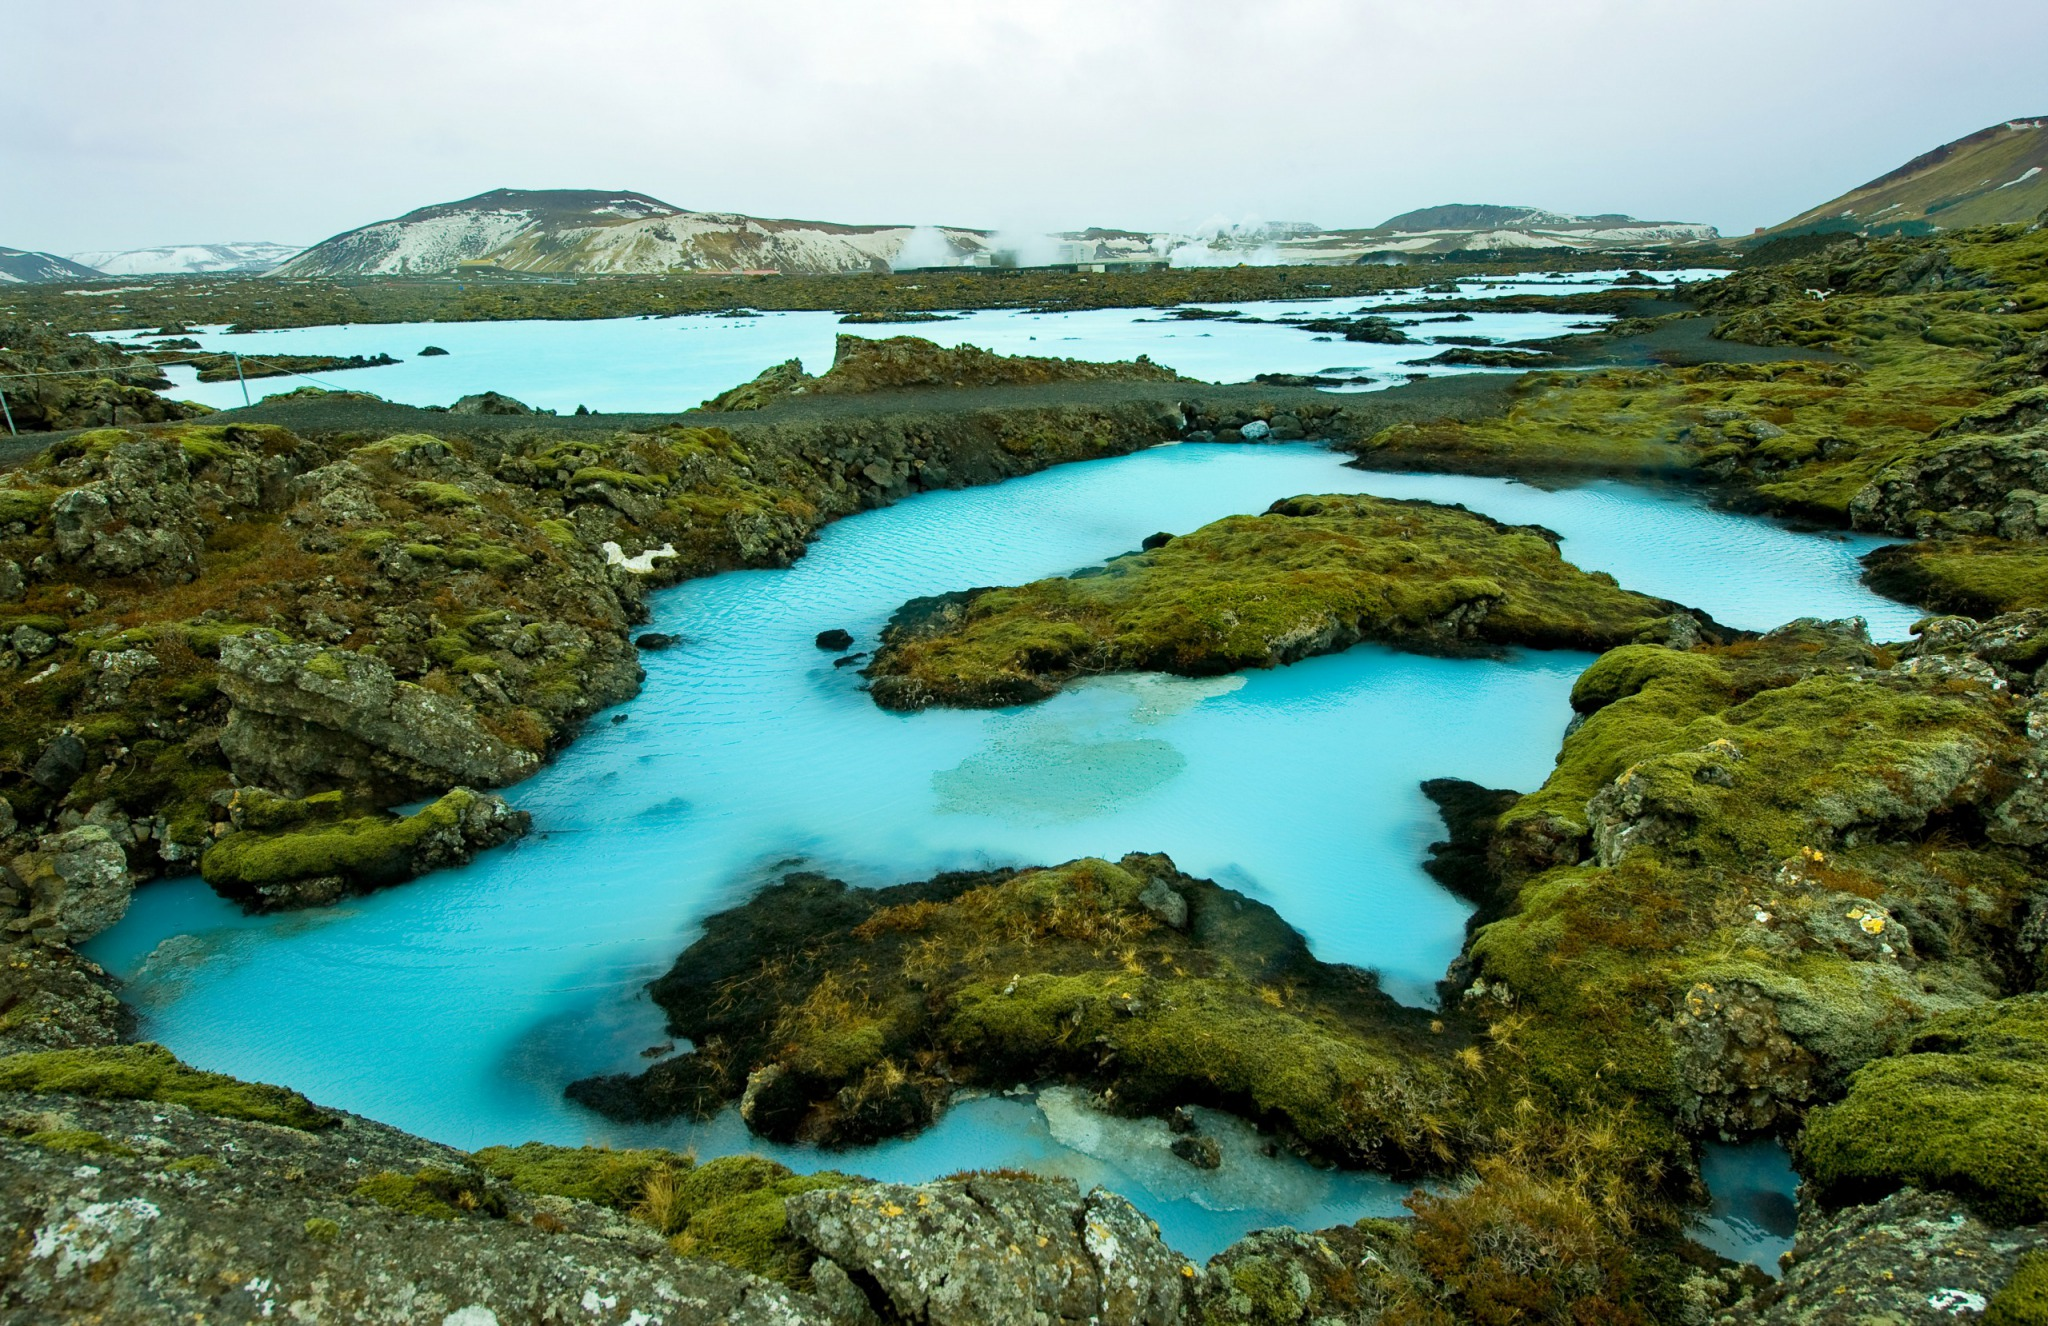 The Blue Lagoon resort of Iceland